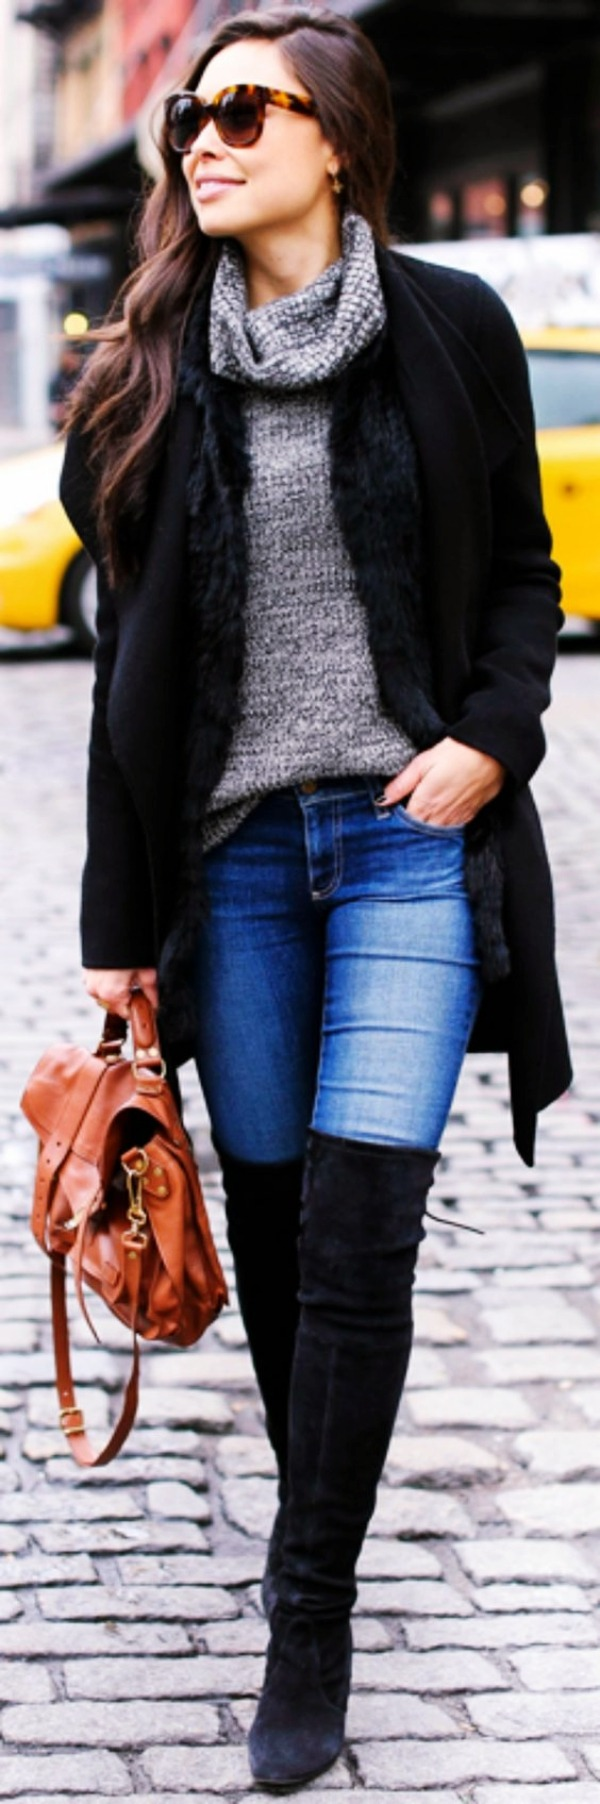 Neueste-Kniehohe Stiefel-Outfit-Ideen